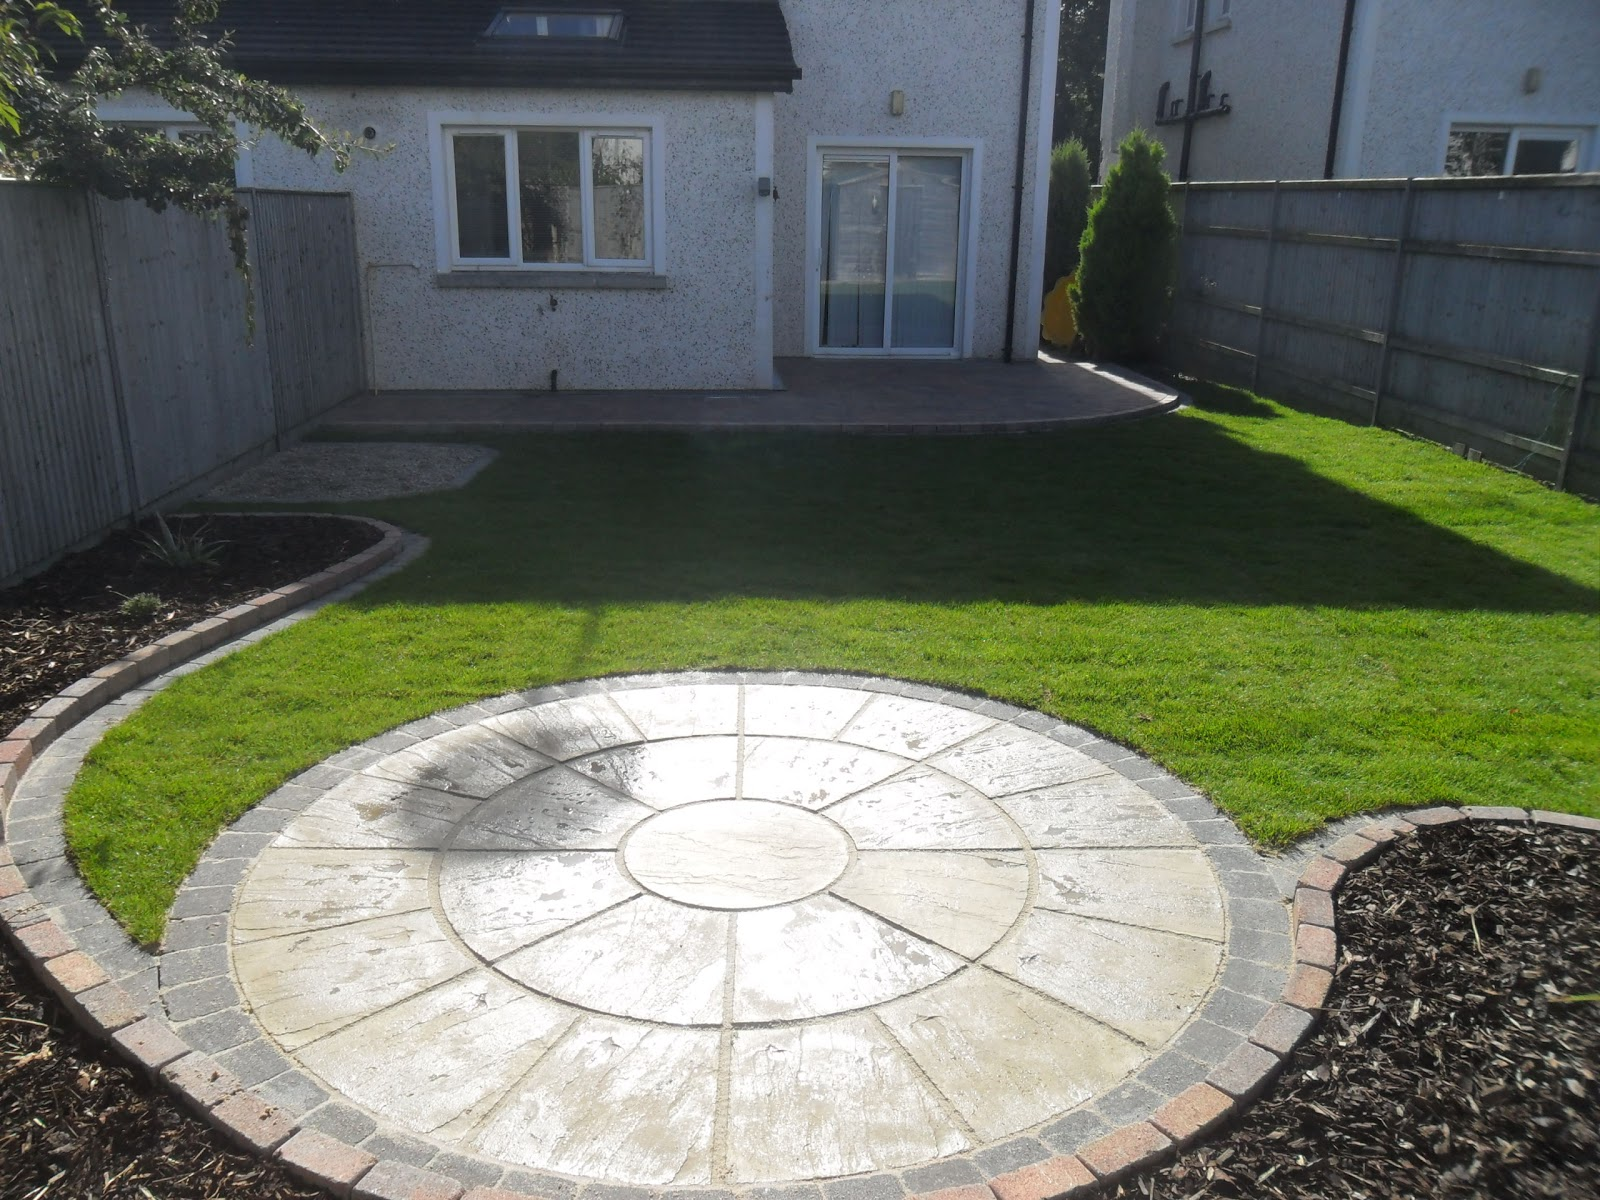 Greenart landscapes garden design construction and for Round garden designs